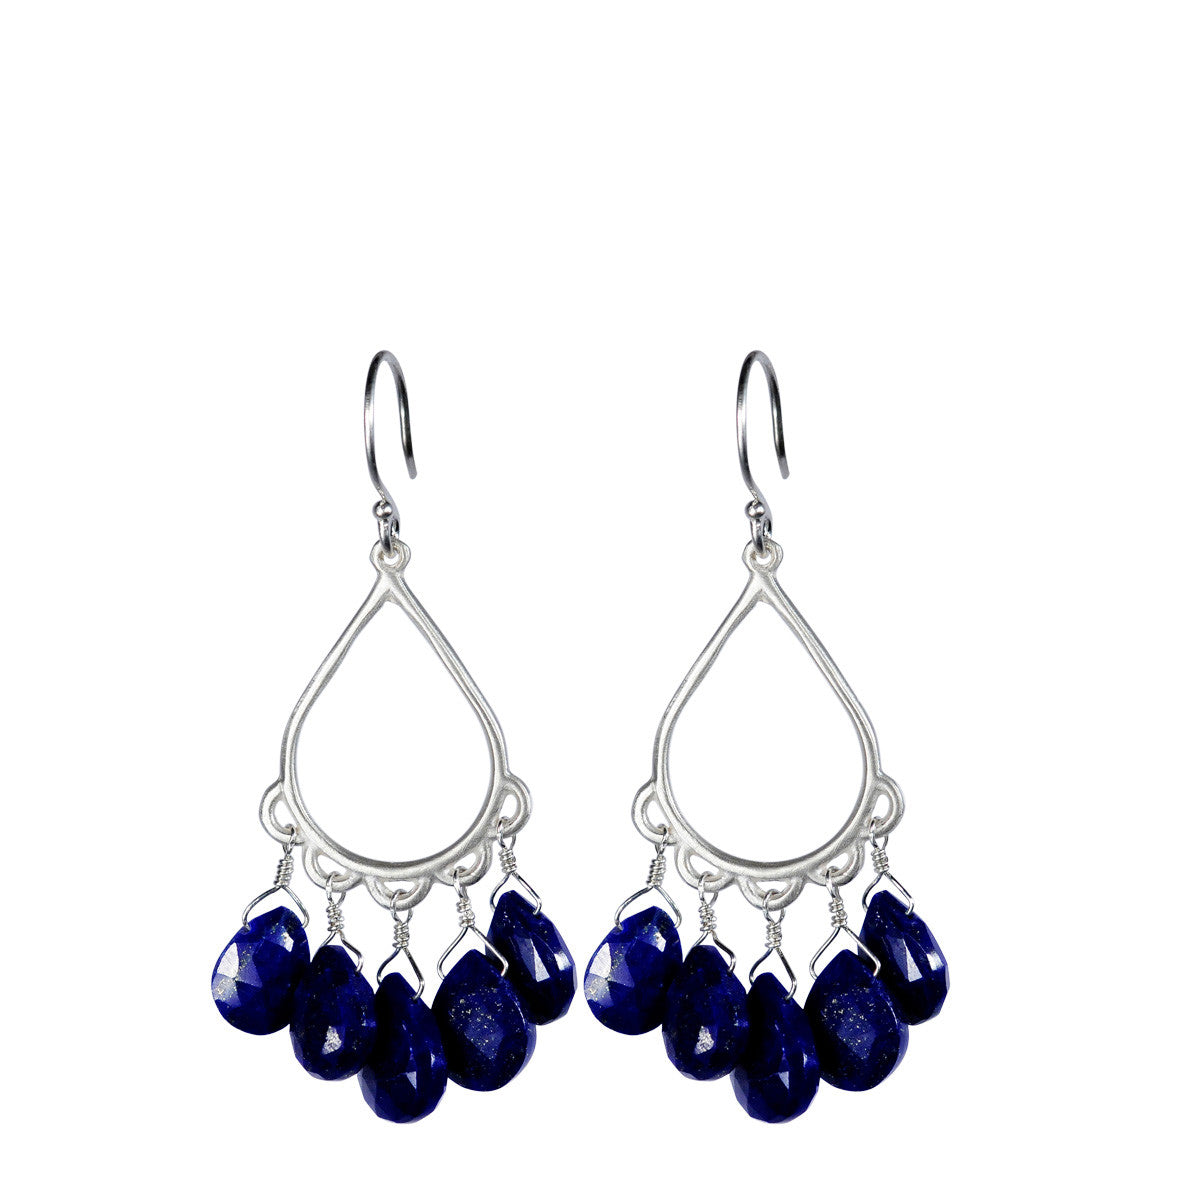 Sterling Silver Small Teardrop Earring with Lapis